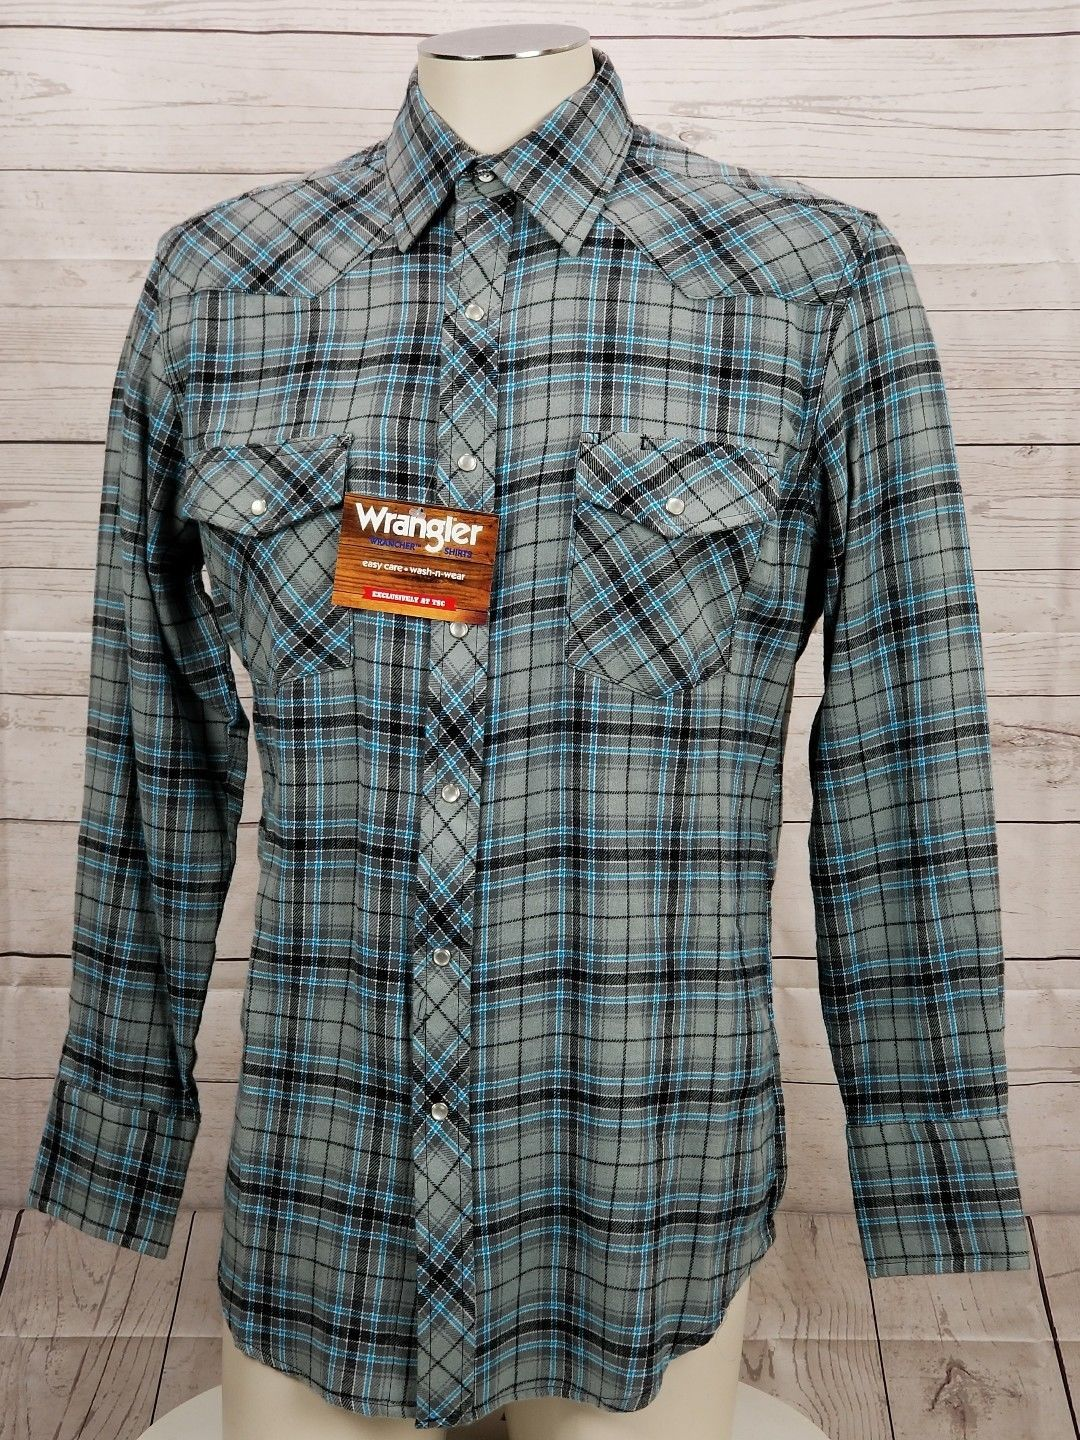 8240dfb1 Wrangler Wrancher Mens Size Medium Plaid Flannel Pearl Snap Western Shirt  NEW f